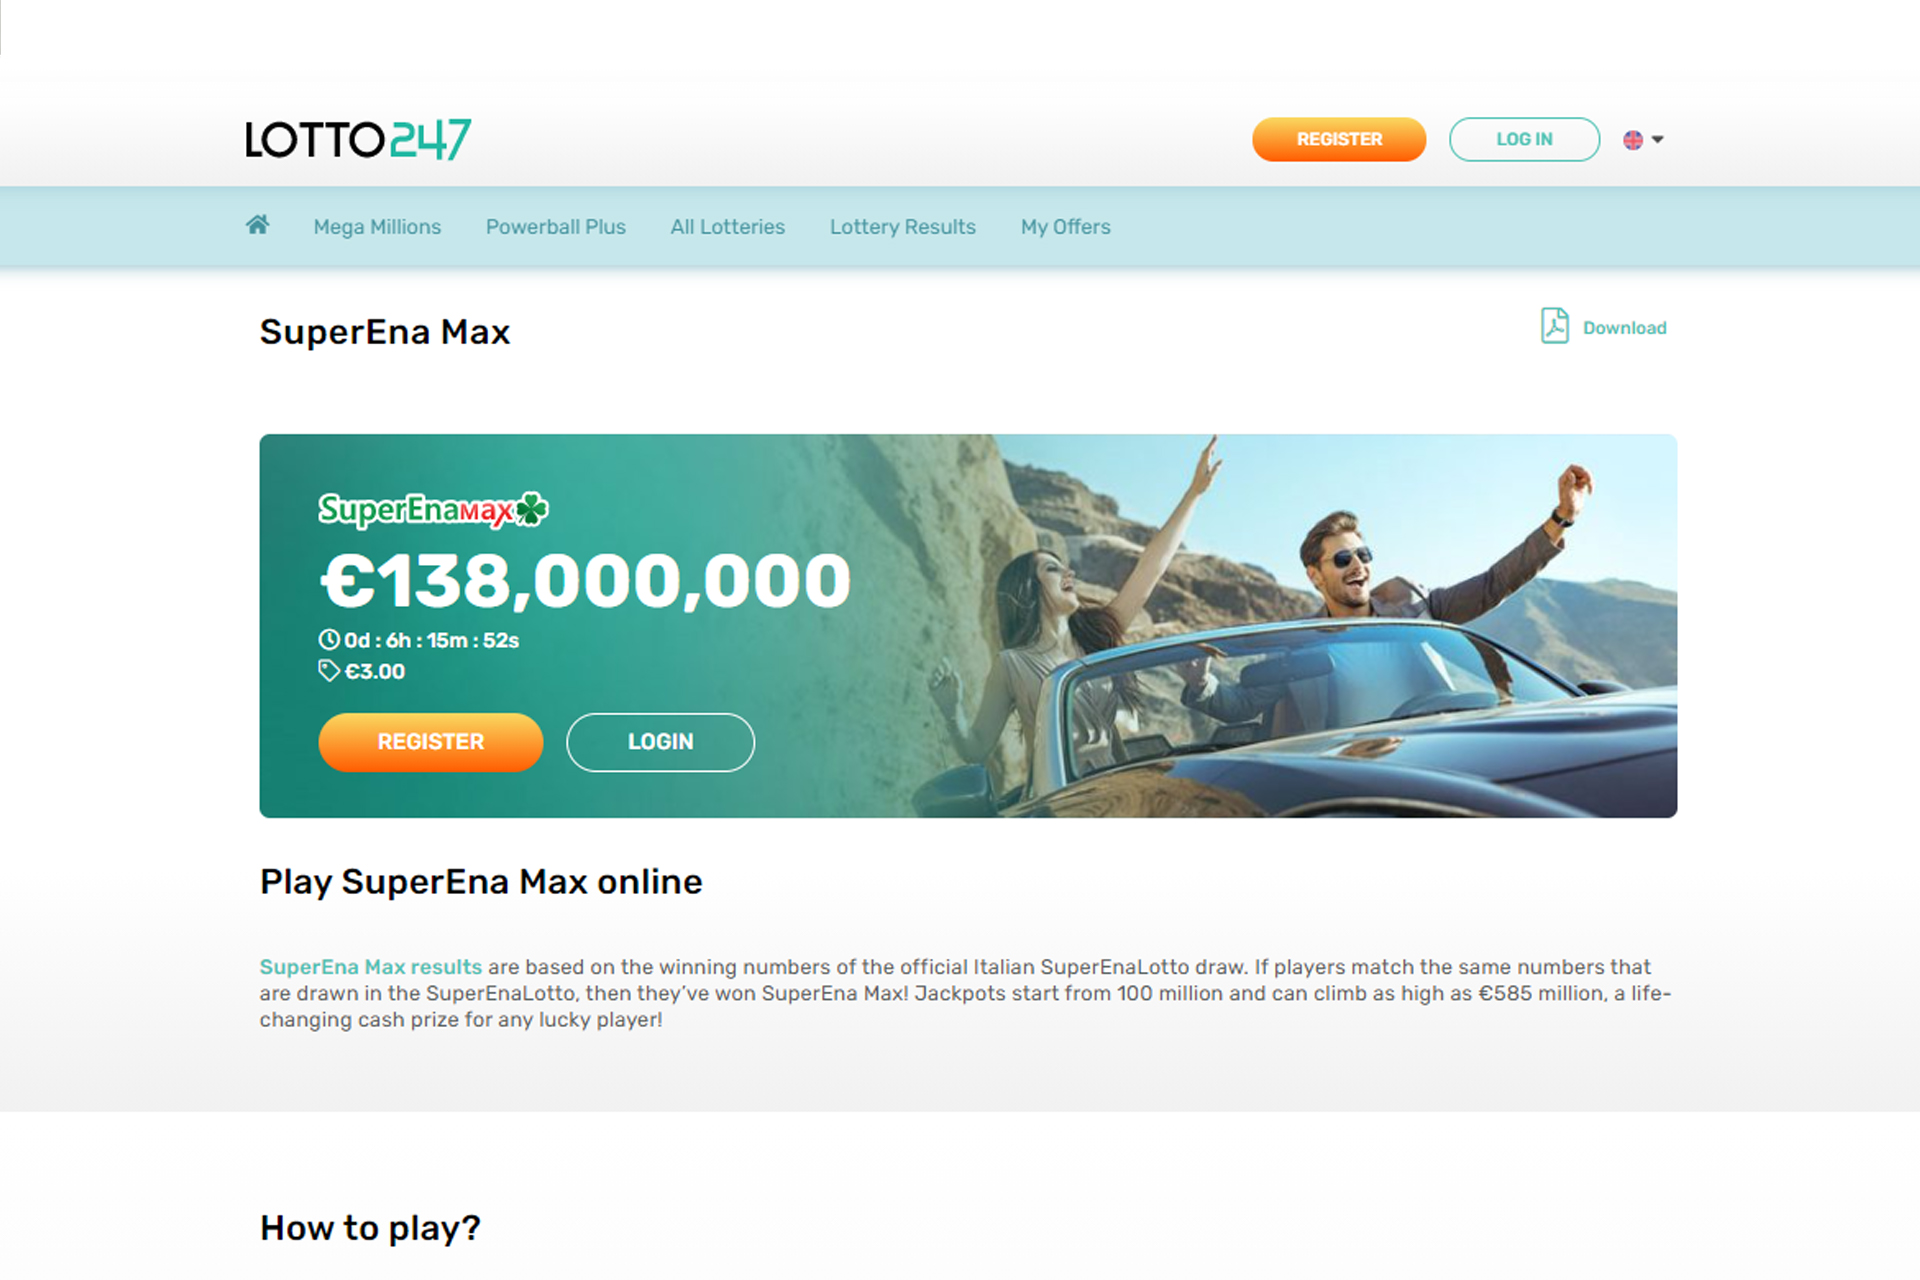 SuperEna Max allows to win a huge jackpot.